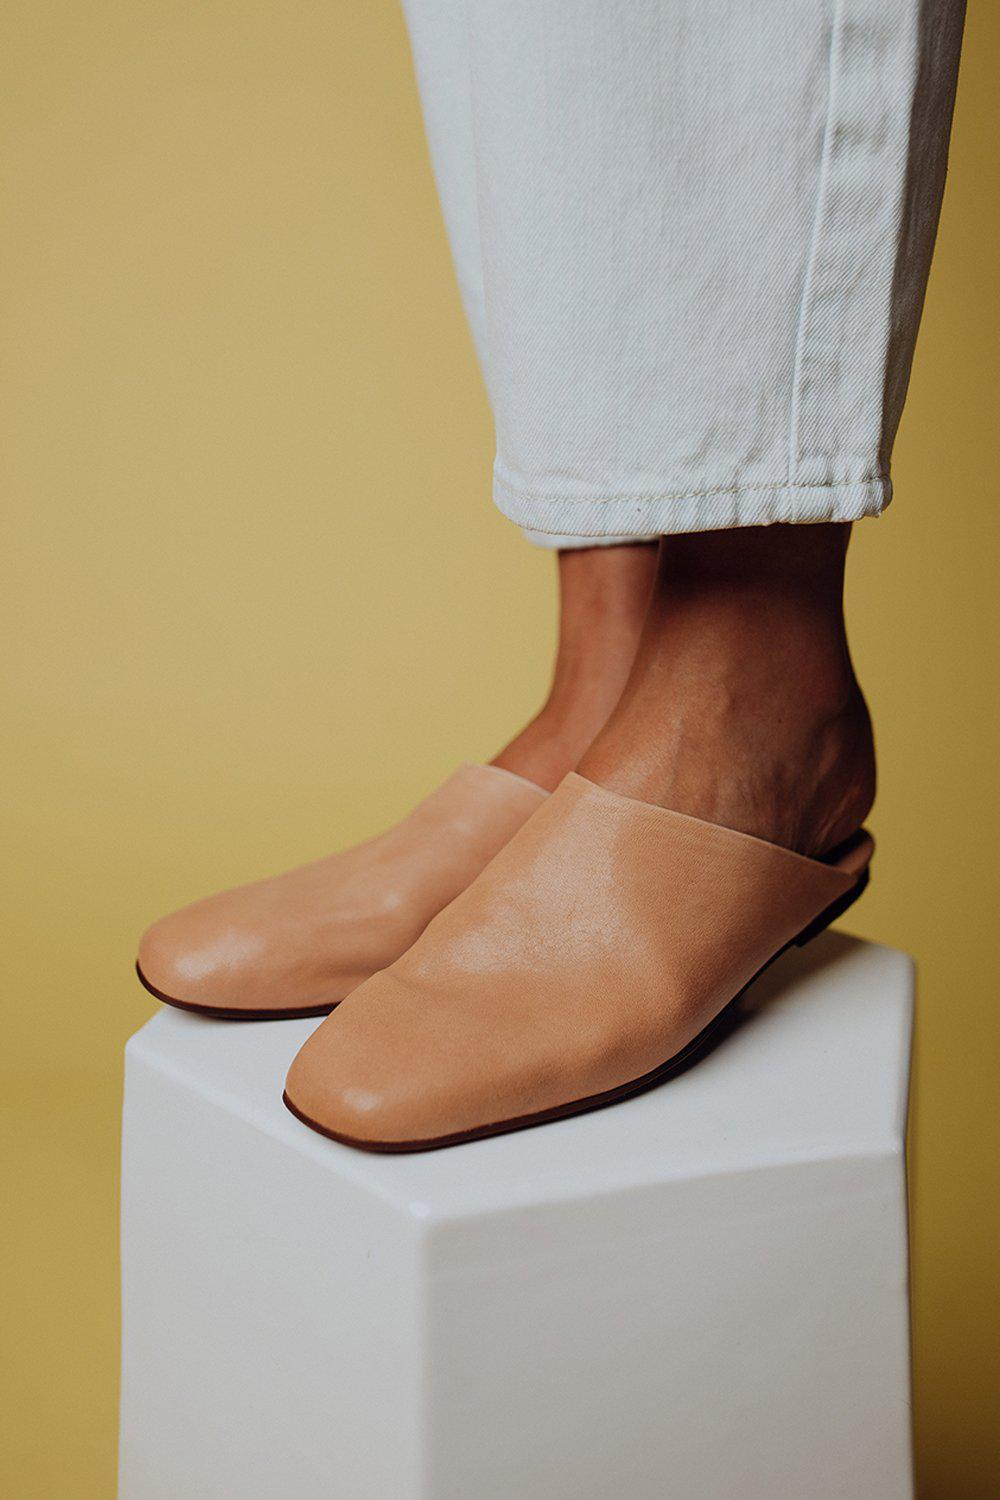 best_seller, Free People Reese Flat in Natural, Shoes, women's clothing, dresses, skirts, coats, jackets, shoes, boots, tops, tee shirts, jeans, free people, levi's, rollas, jumpsuits, bottoms, tops, sweaters, pullovers, pants, shorts, sweats,.